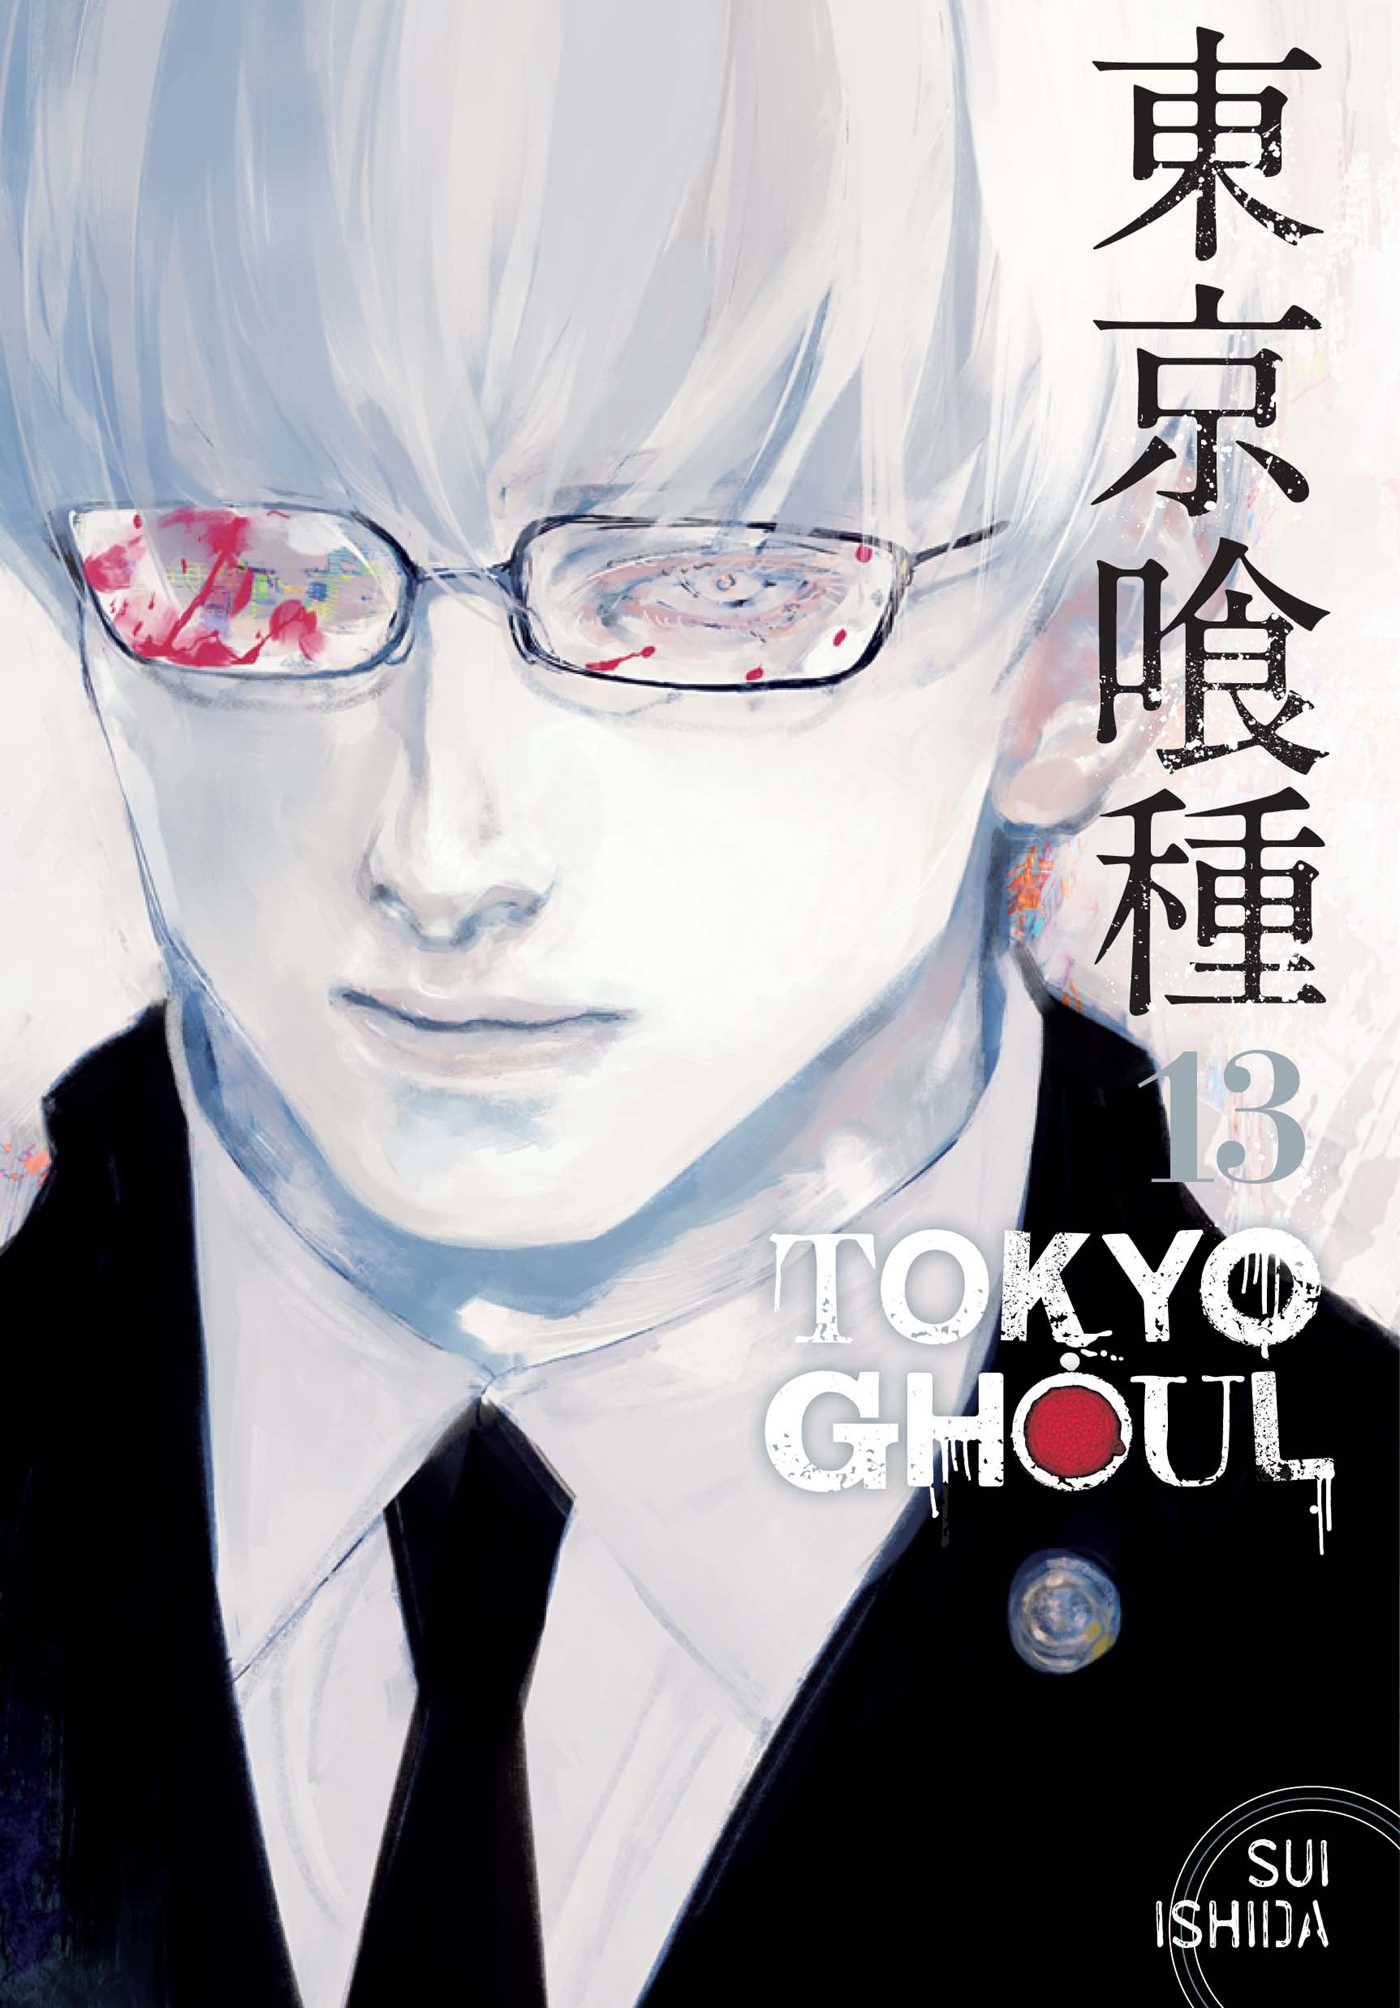 Tokyo Ghoul, Vol  13 | Book by Sui Ishida | Official